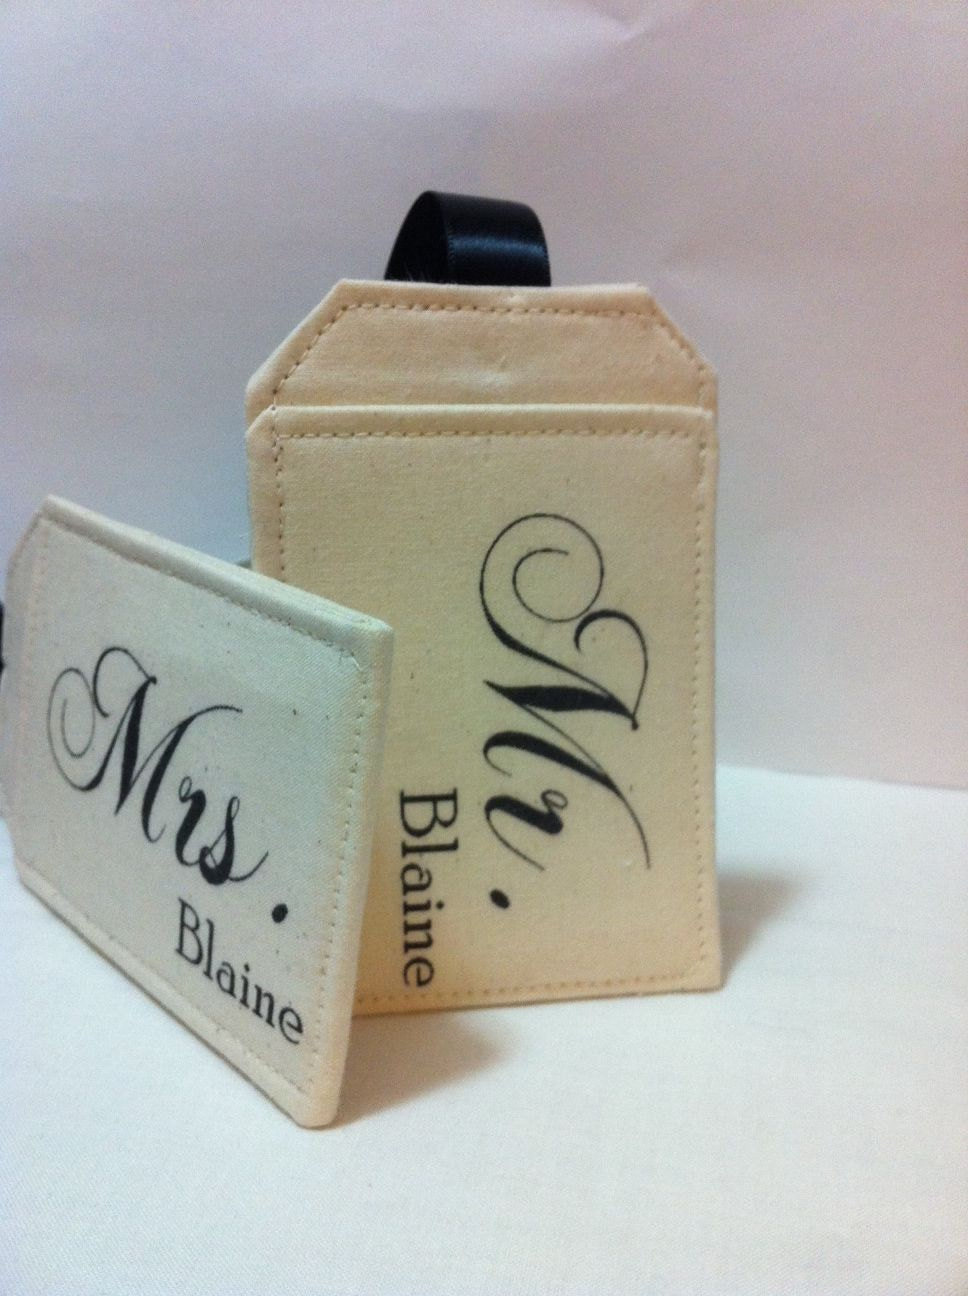 Personalised Luggage Tags Wedding Gift : Personalized Mr and Mrs Luggage Tags Wedding Gift Custom